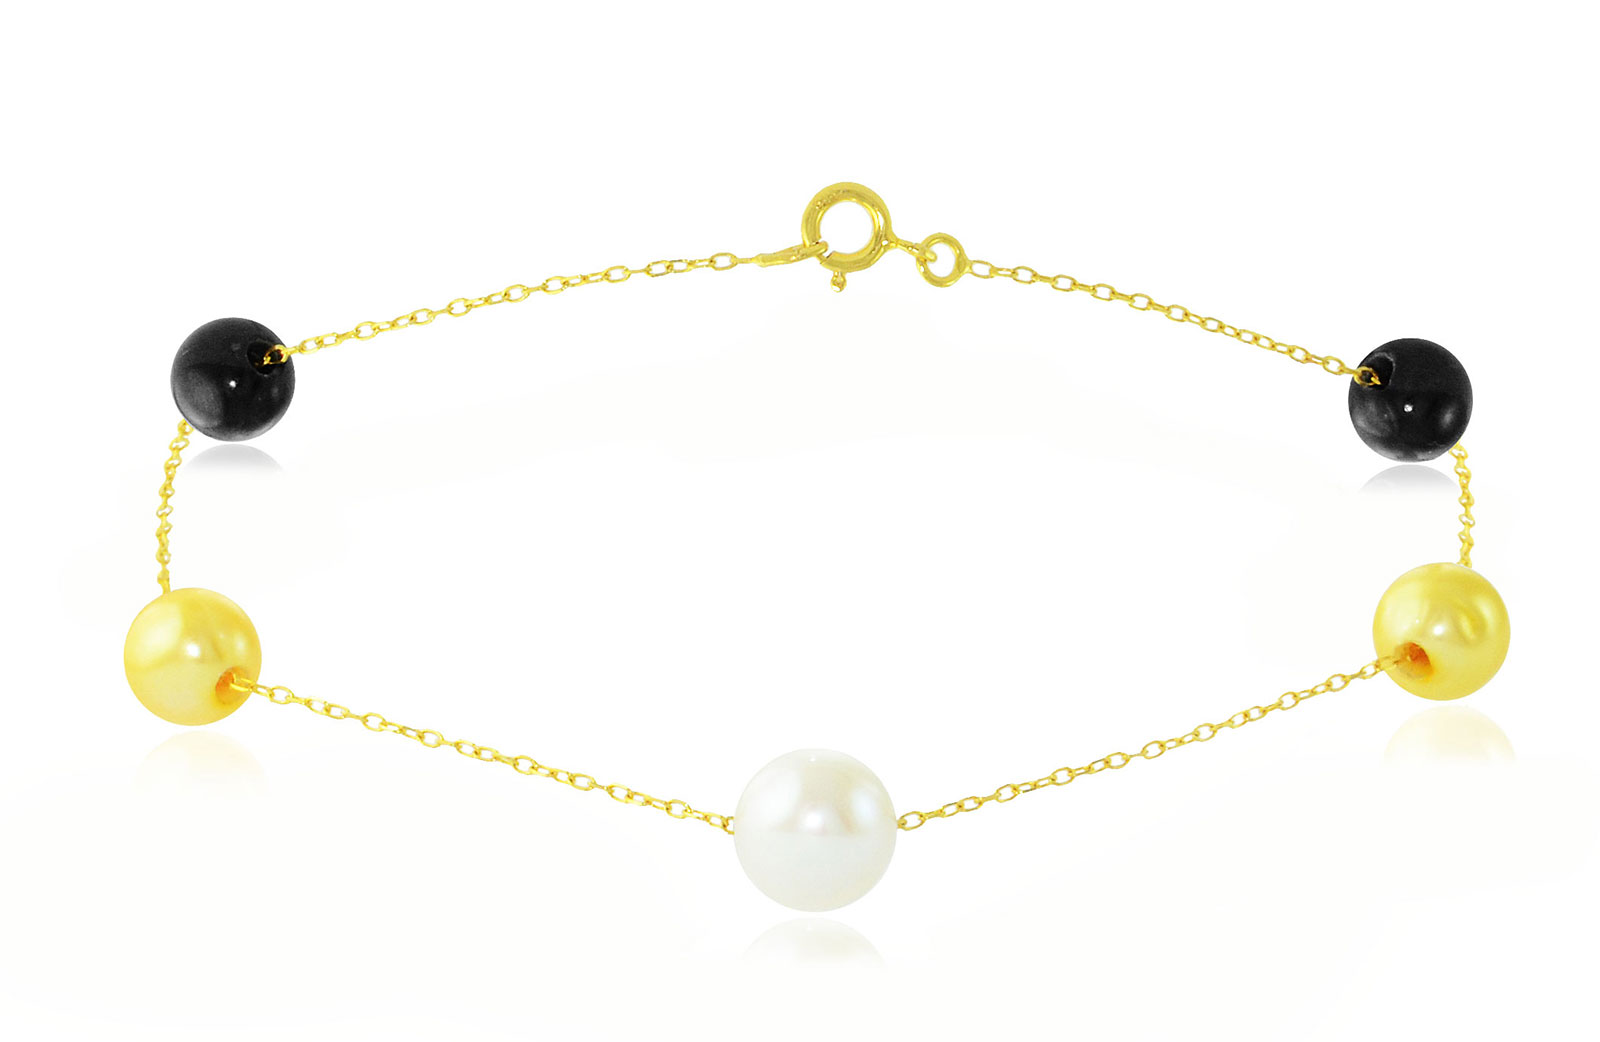 Vp Jewels 18K Solid Gold 5-7MM Gradual  Built-in Golden-Yelow, White and Black Pearls Bracelet